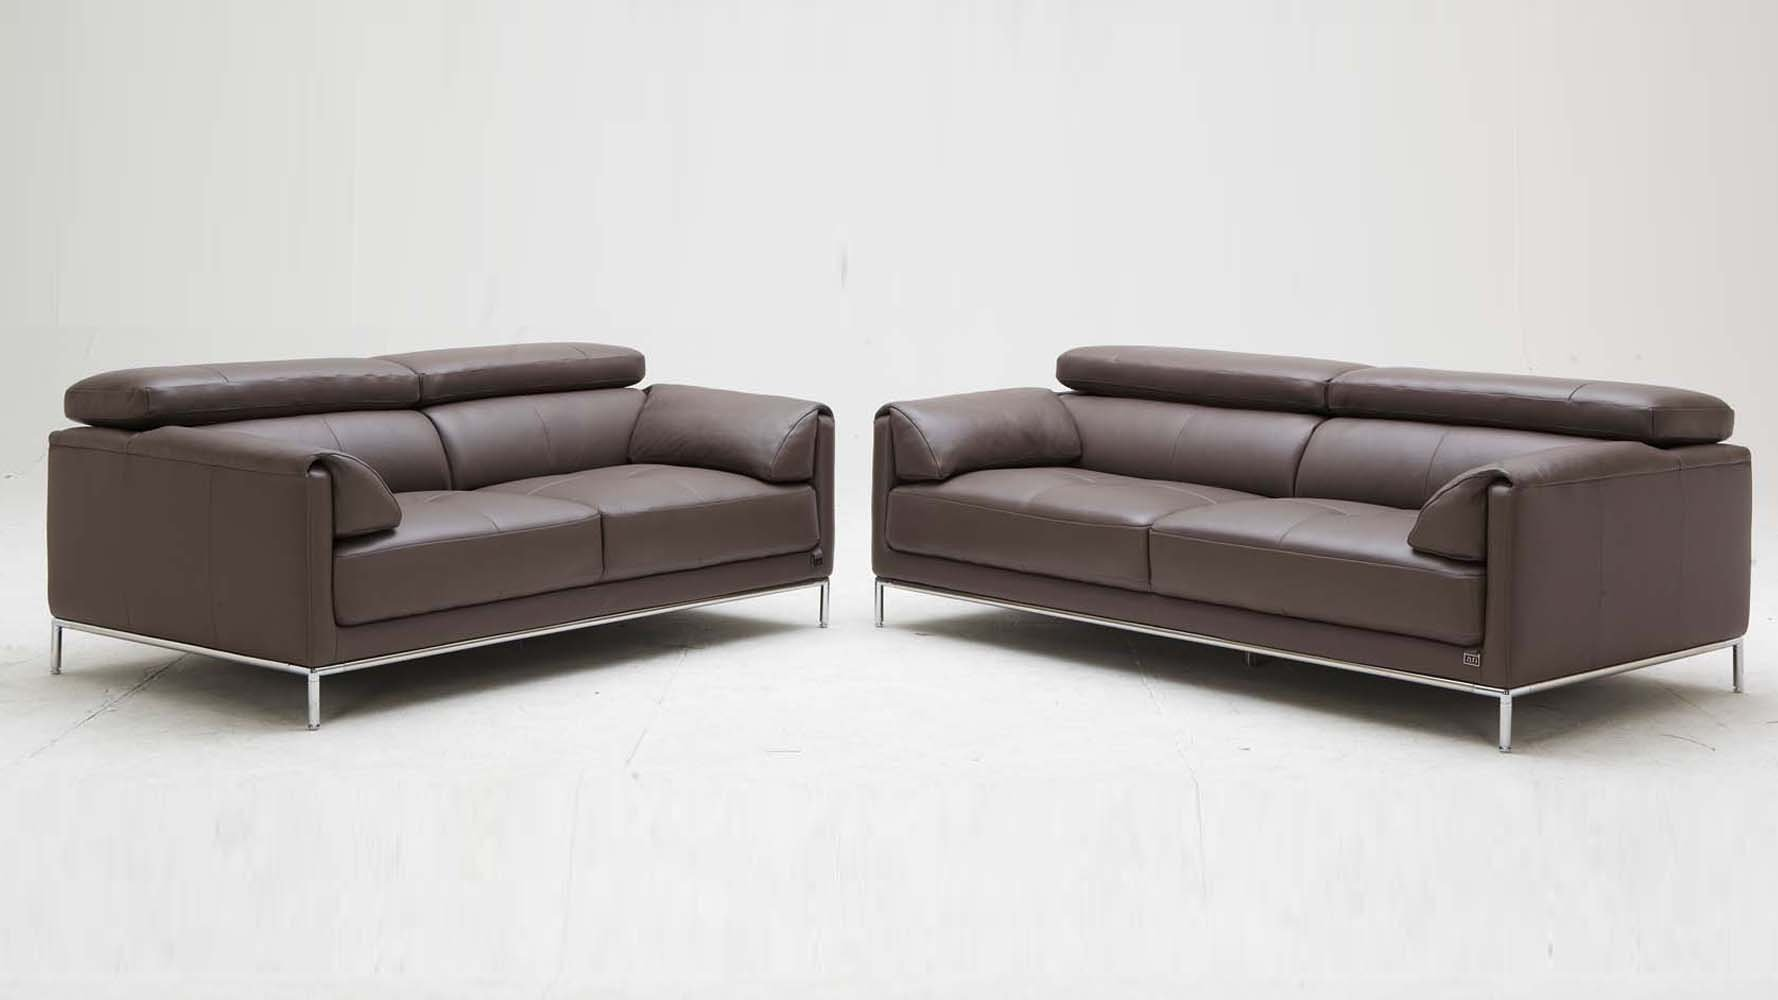 Swell Eaton Sofa And Loveseat Set Taupe Brown Ncnpc Chair Design For Home Ncnpcorg